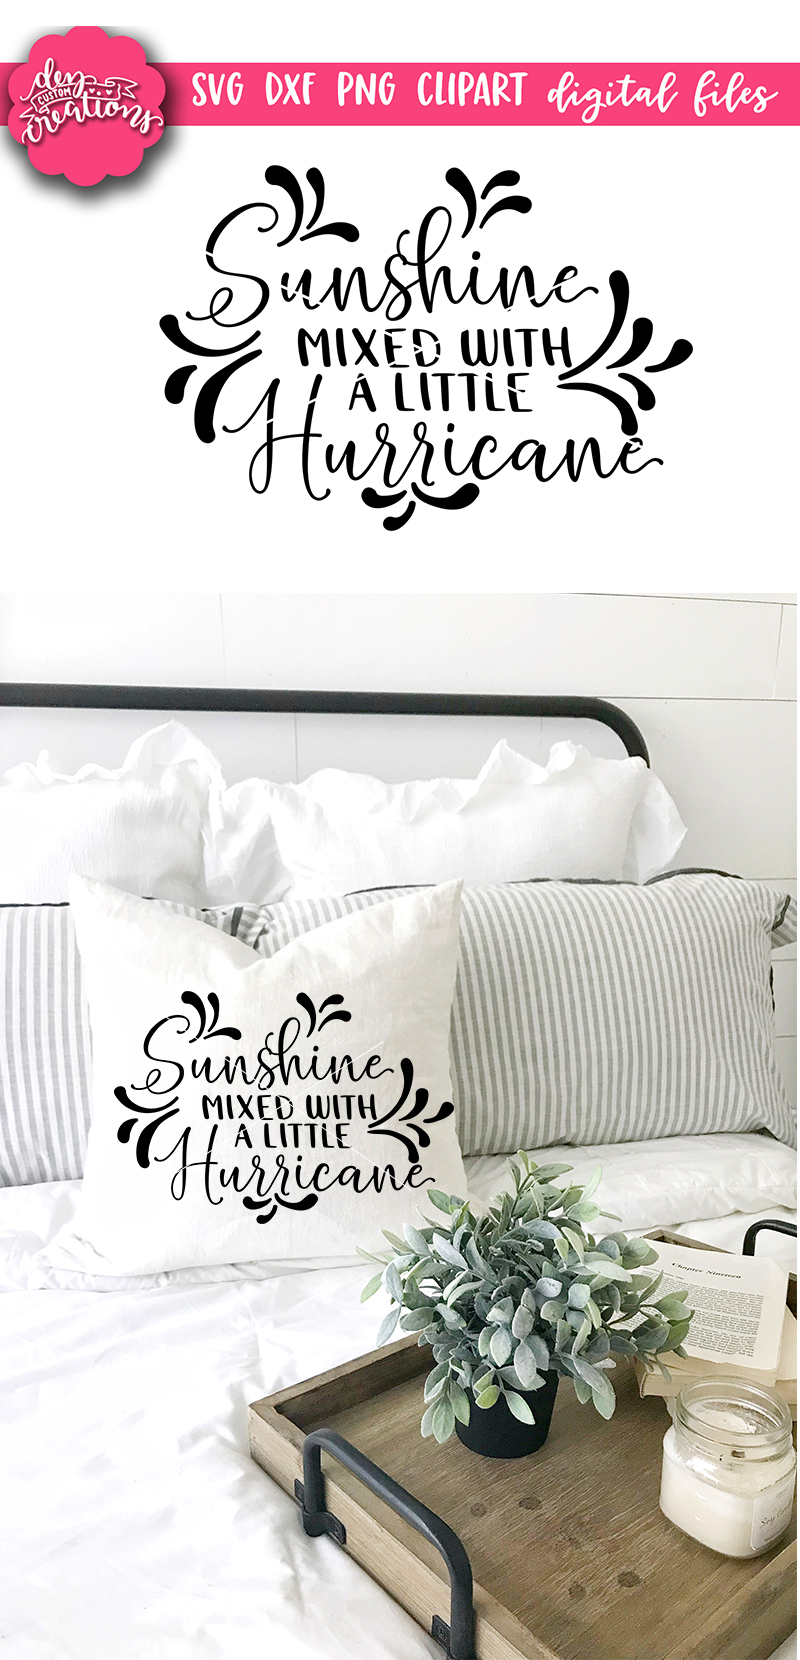 Sunshine Mixed With A Little Hurricane - SVG DXF PNG digital example image 2